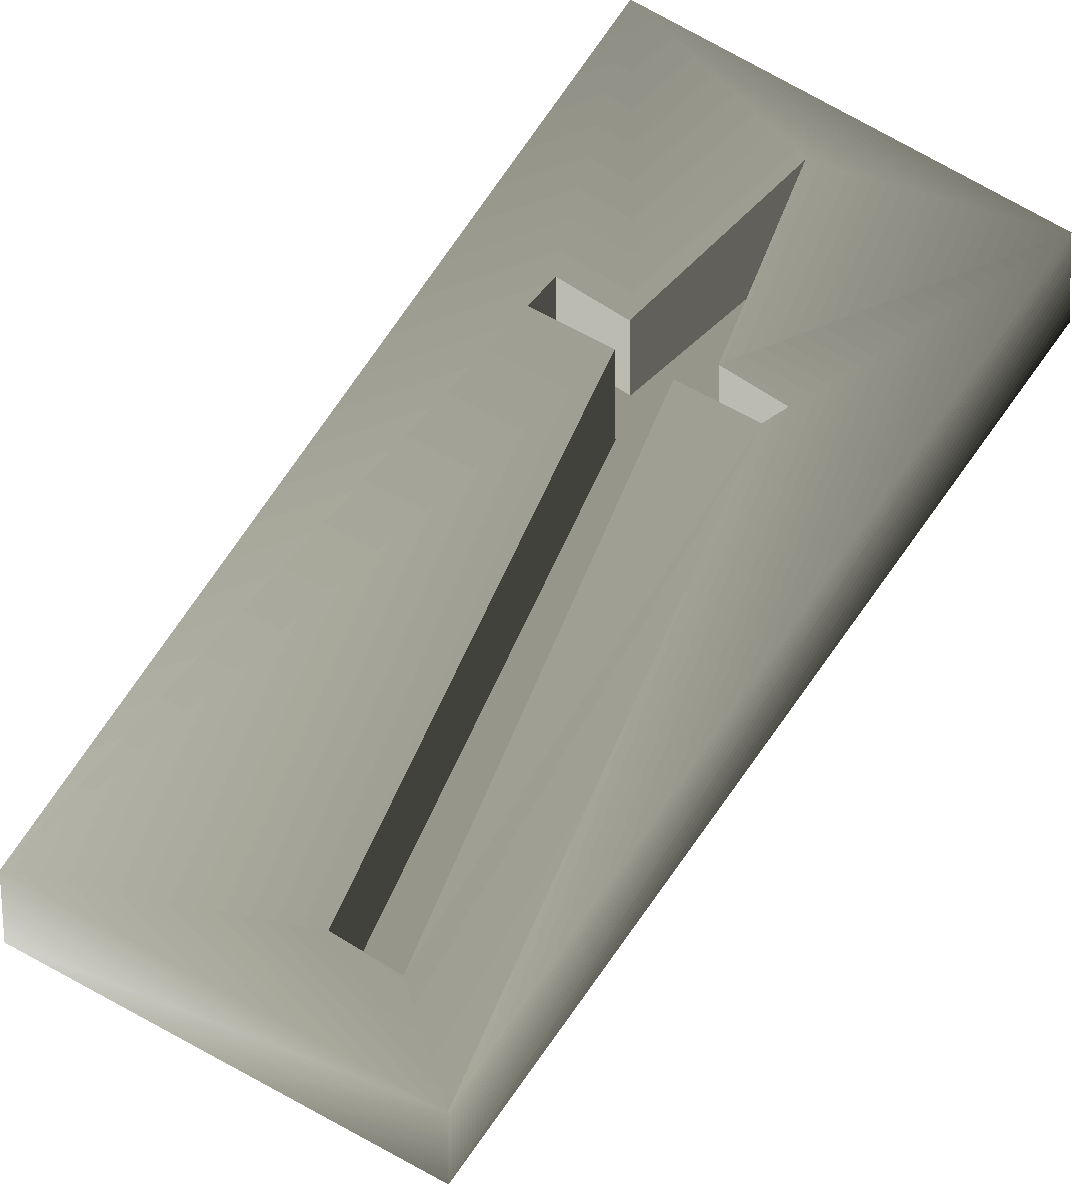 File:Conductor mould detail.png